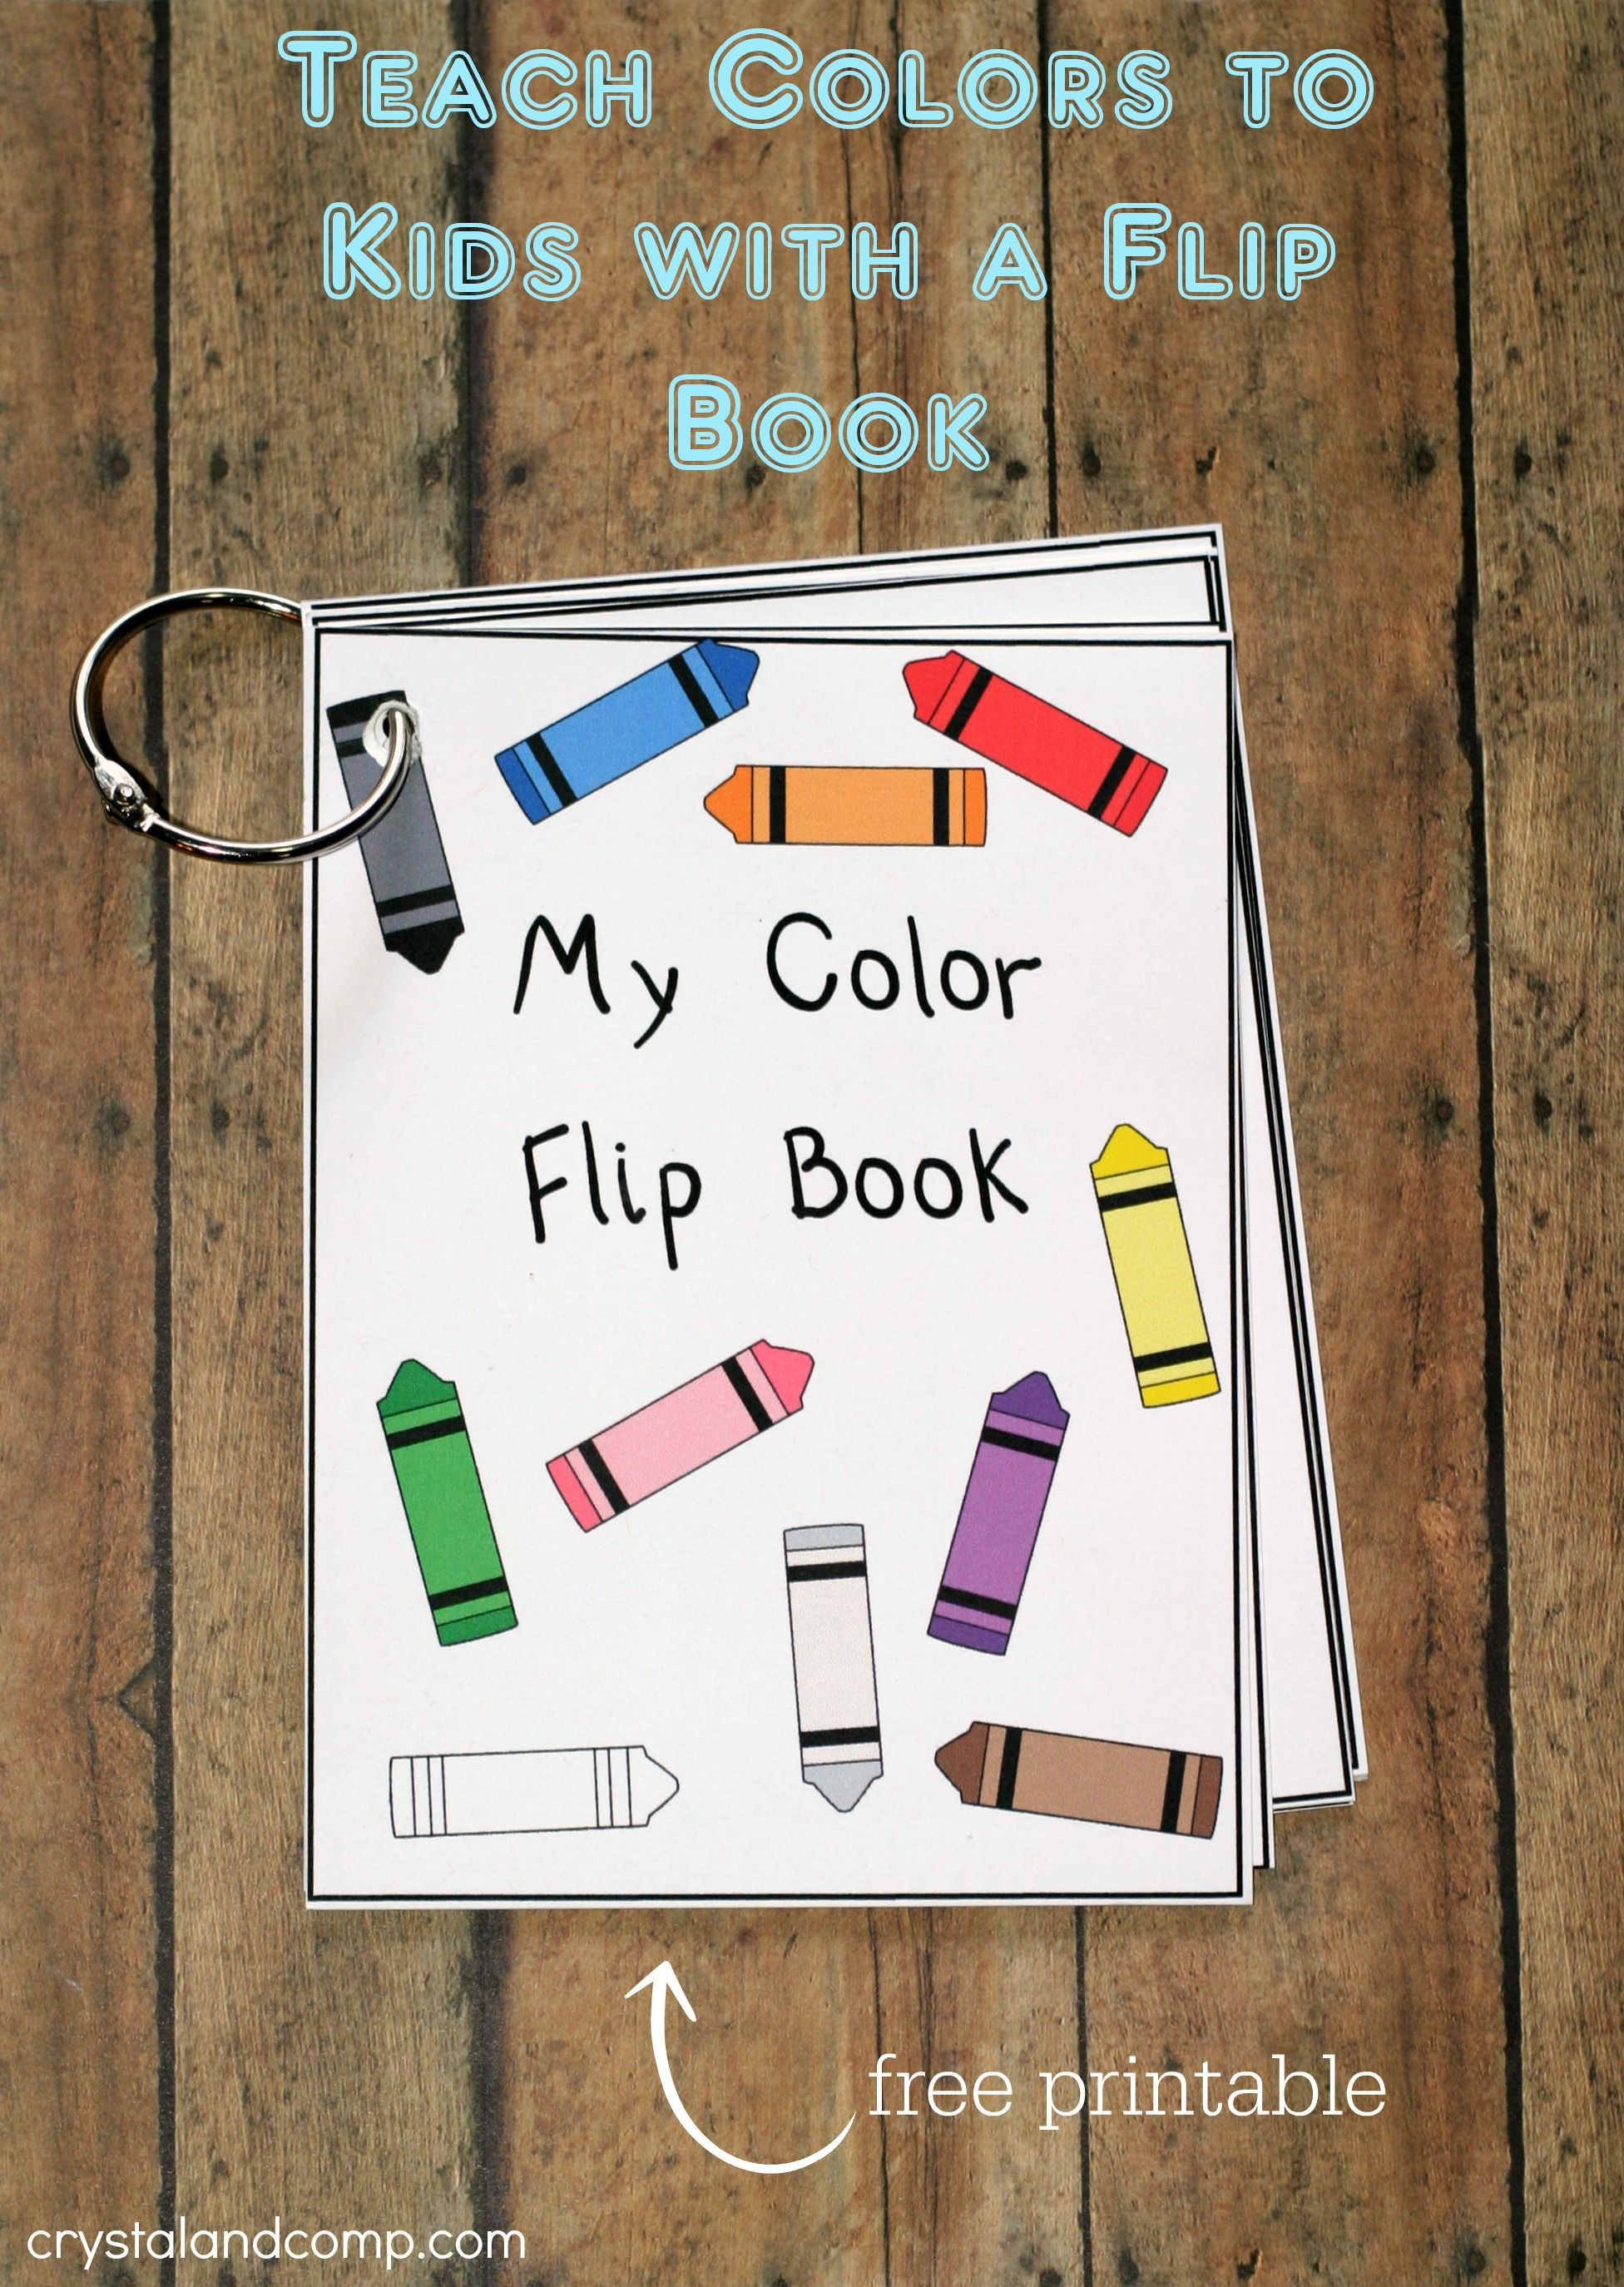 Printable Color Flash Card Flip Book